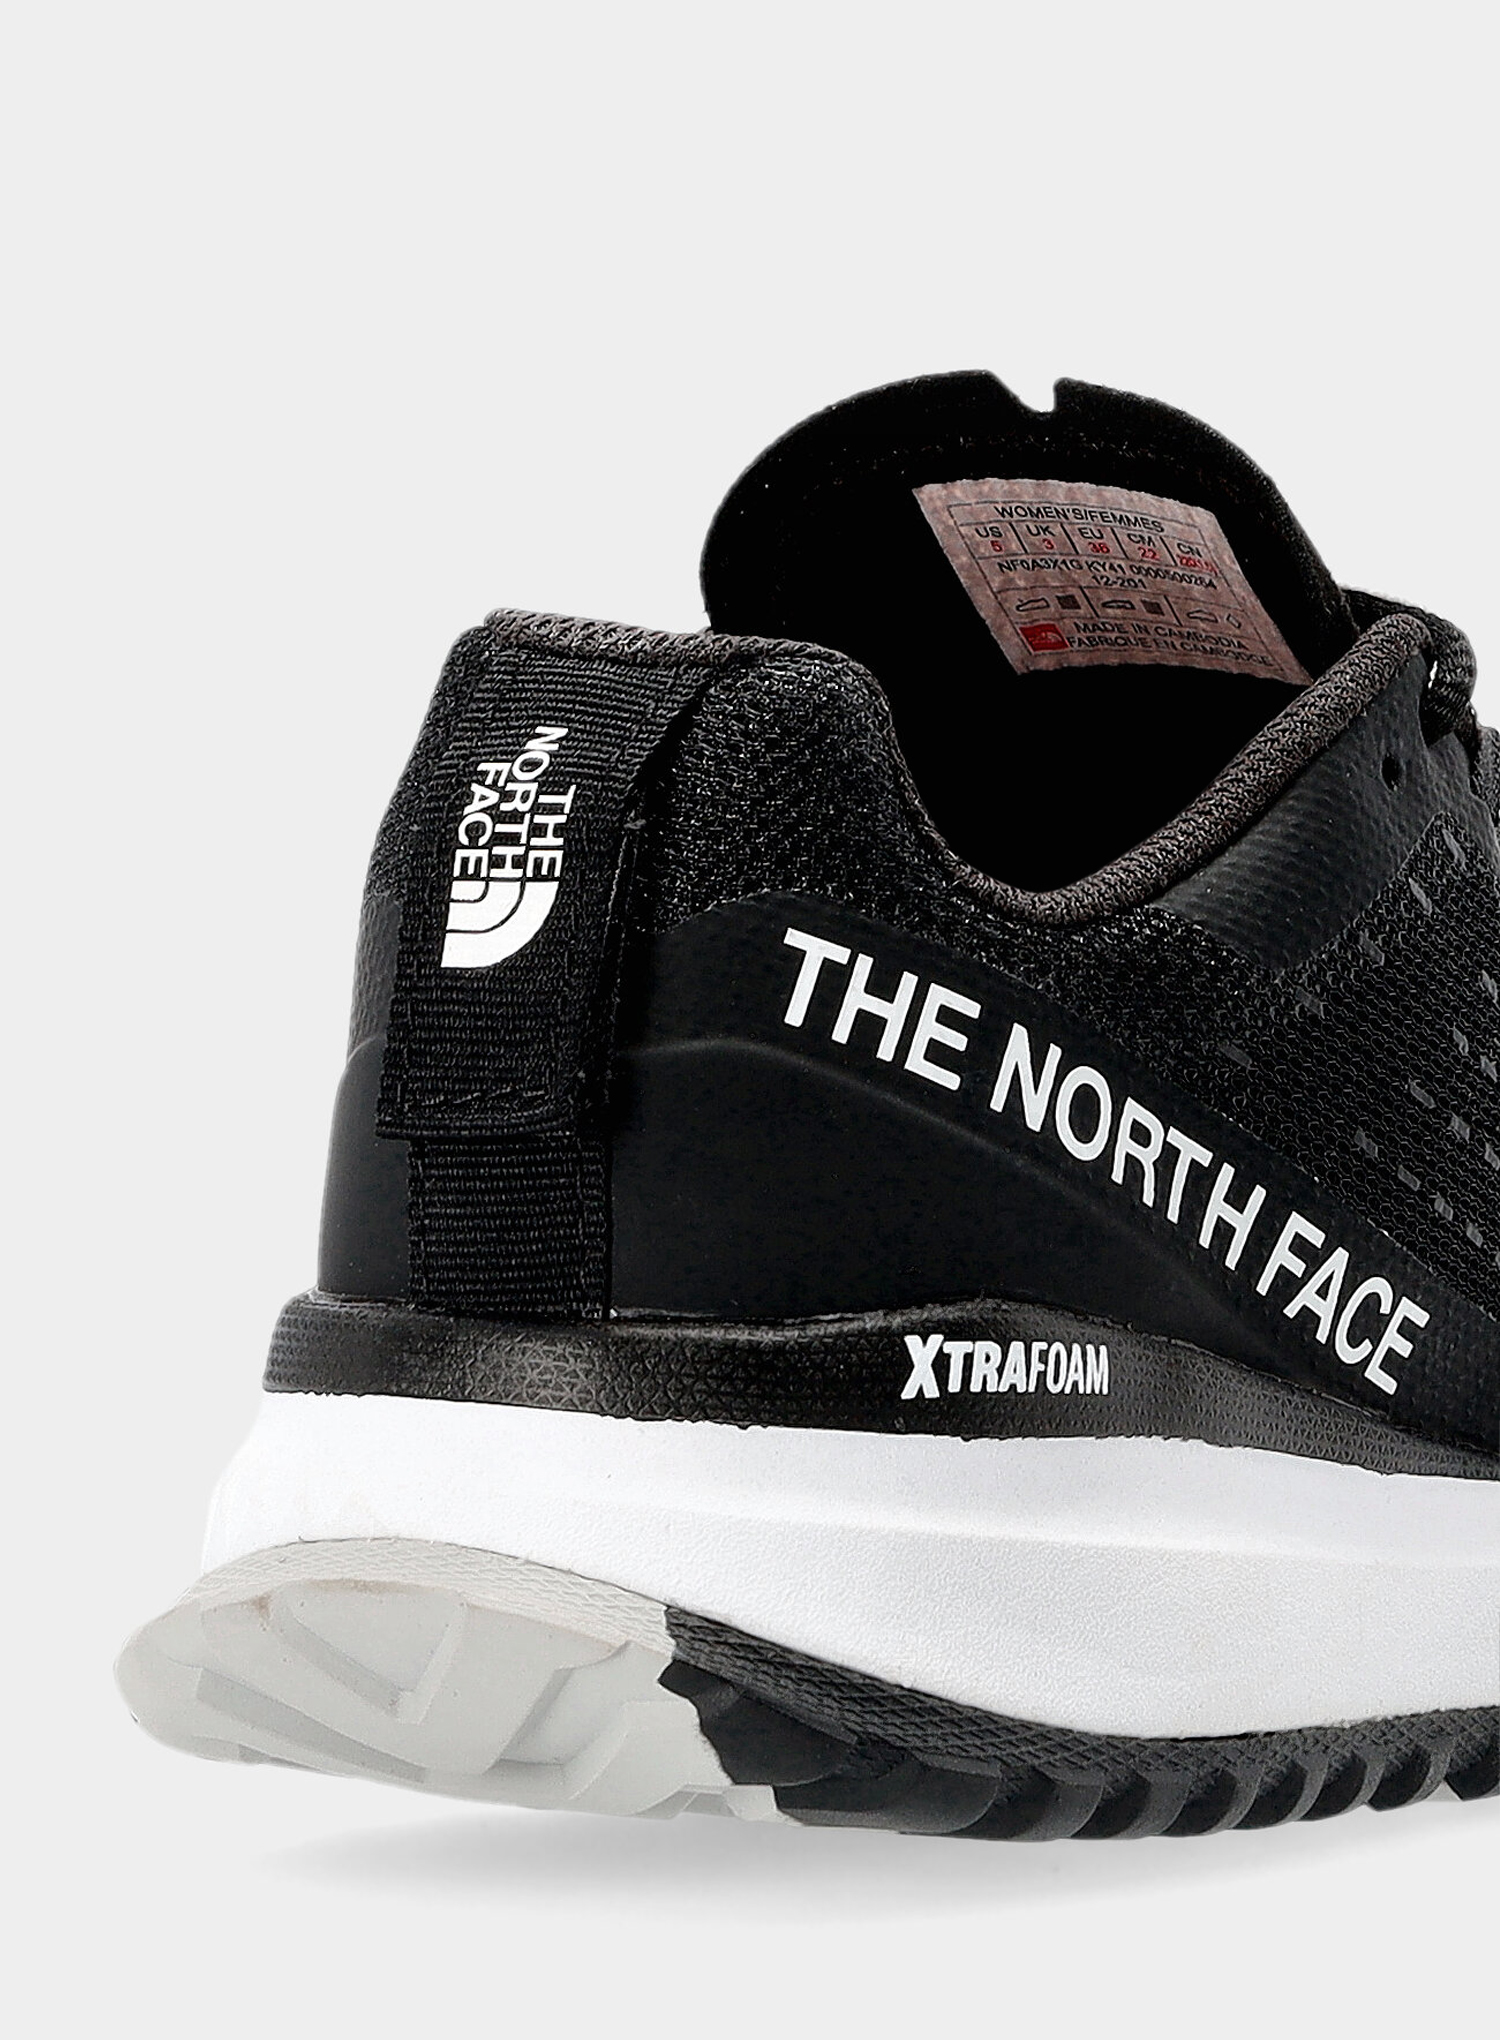 Buty damskie The North Face Ultra Swift - black/white - zdjęcie nr. 10